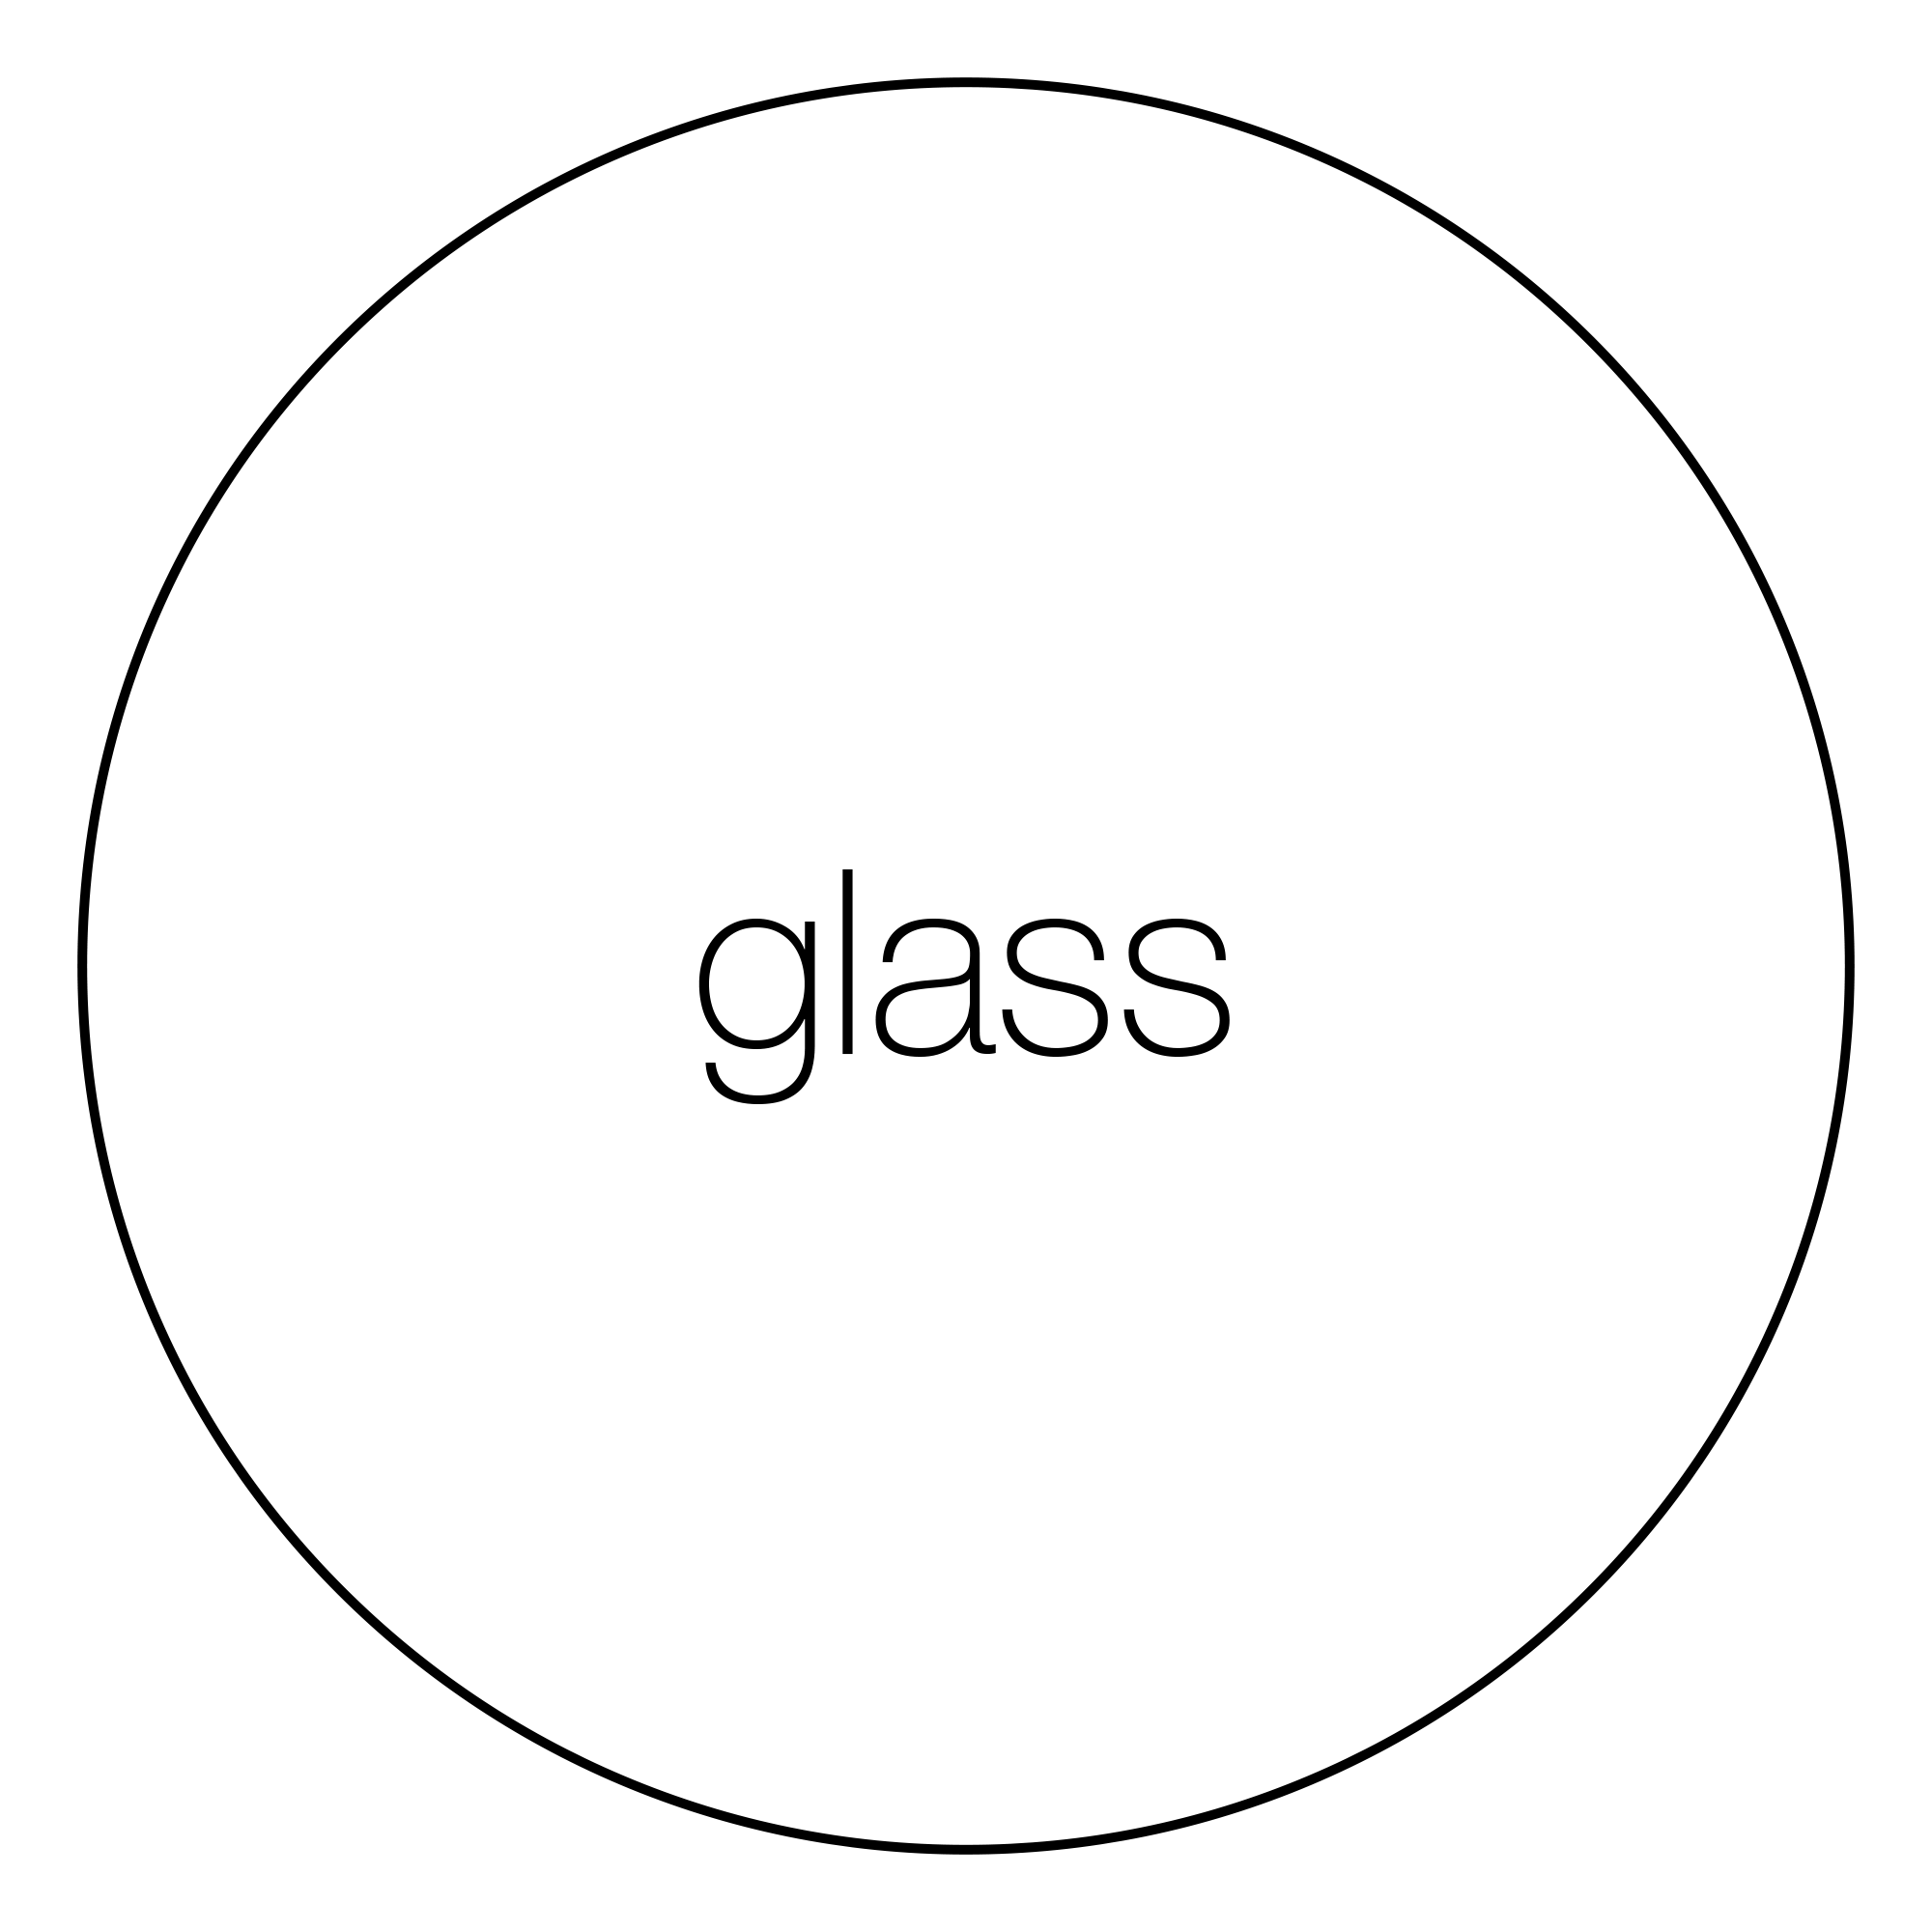 attribute-material-glass